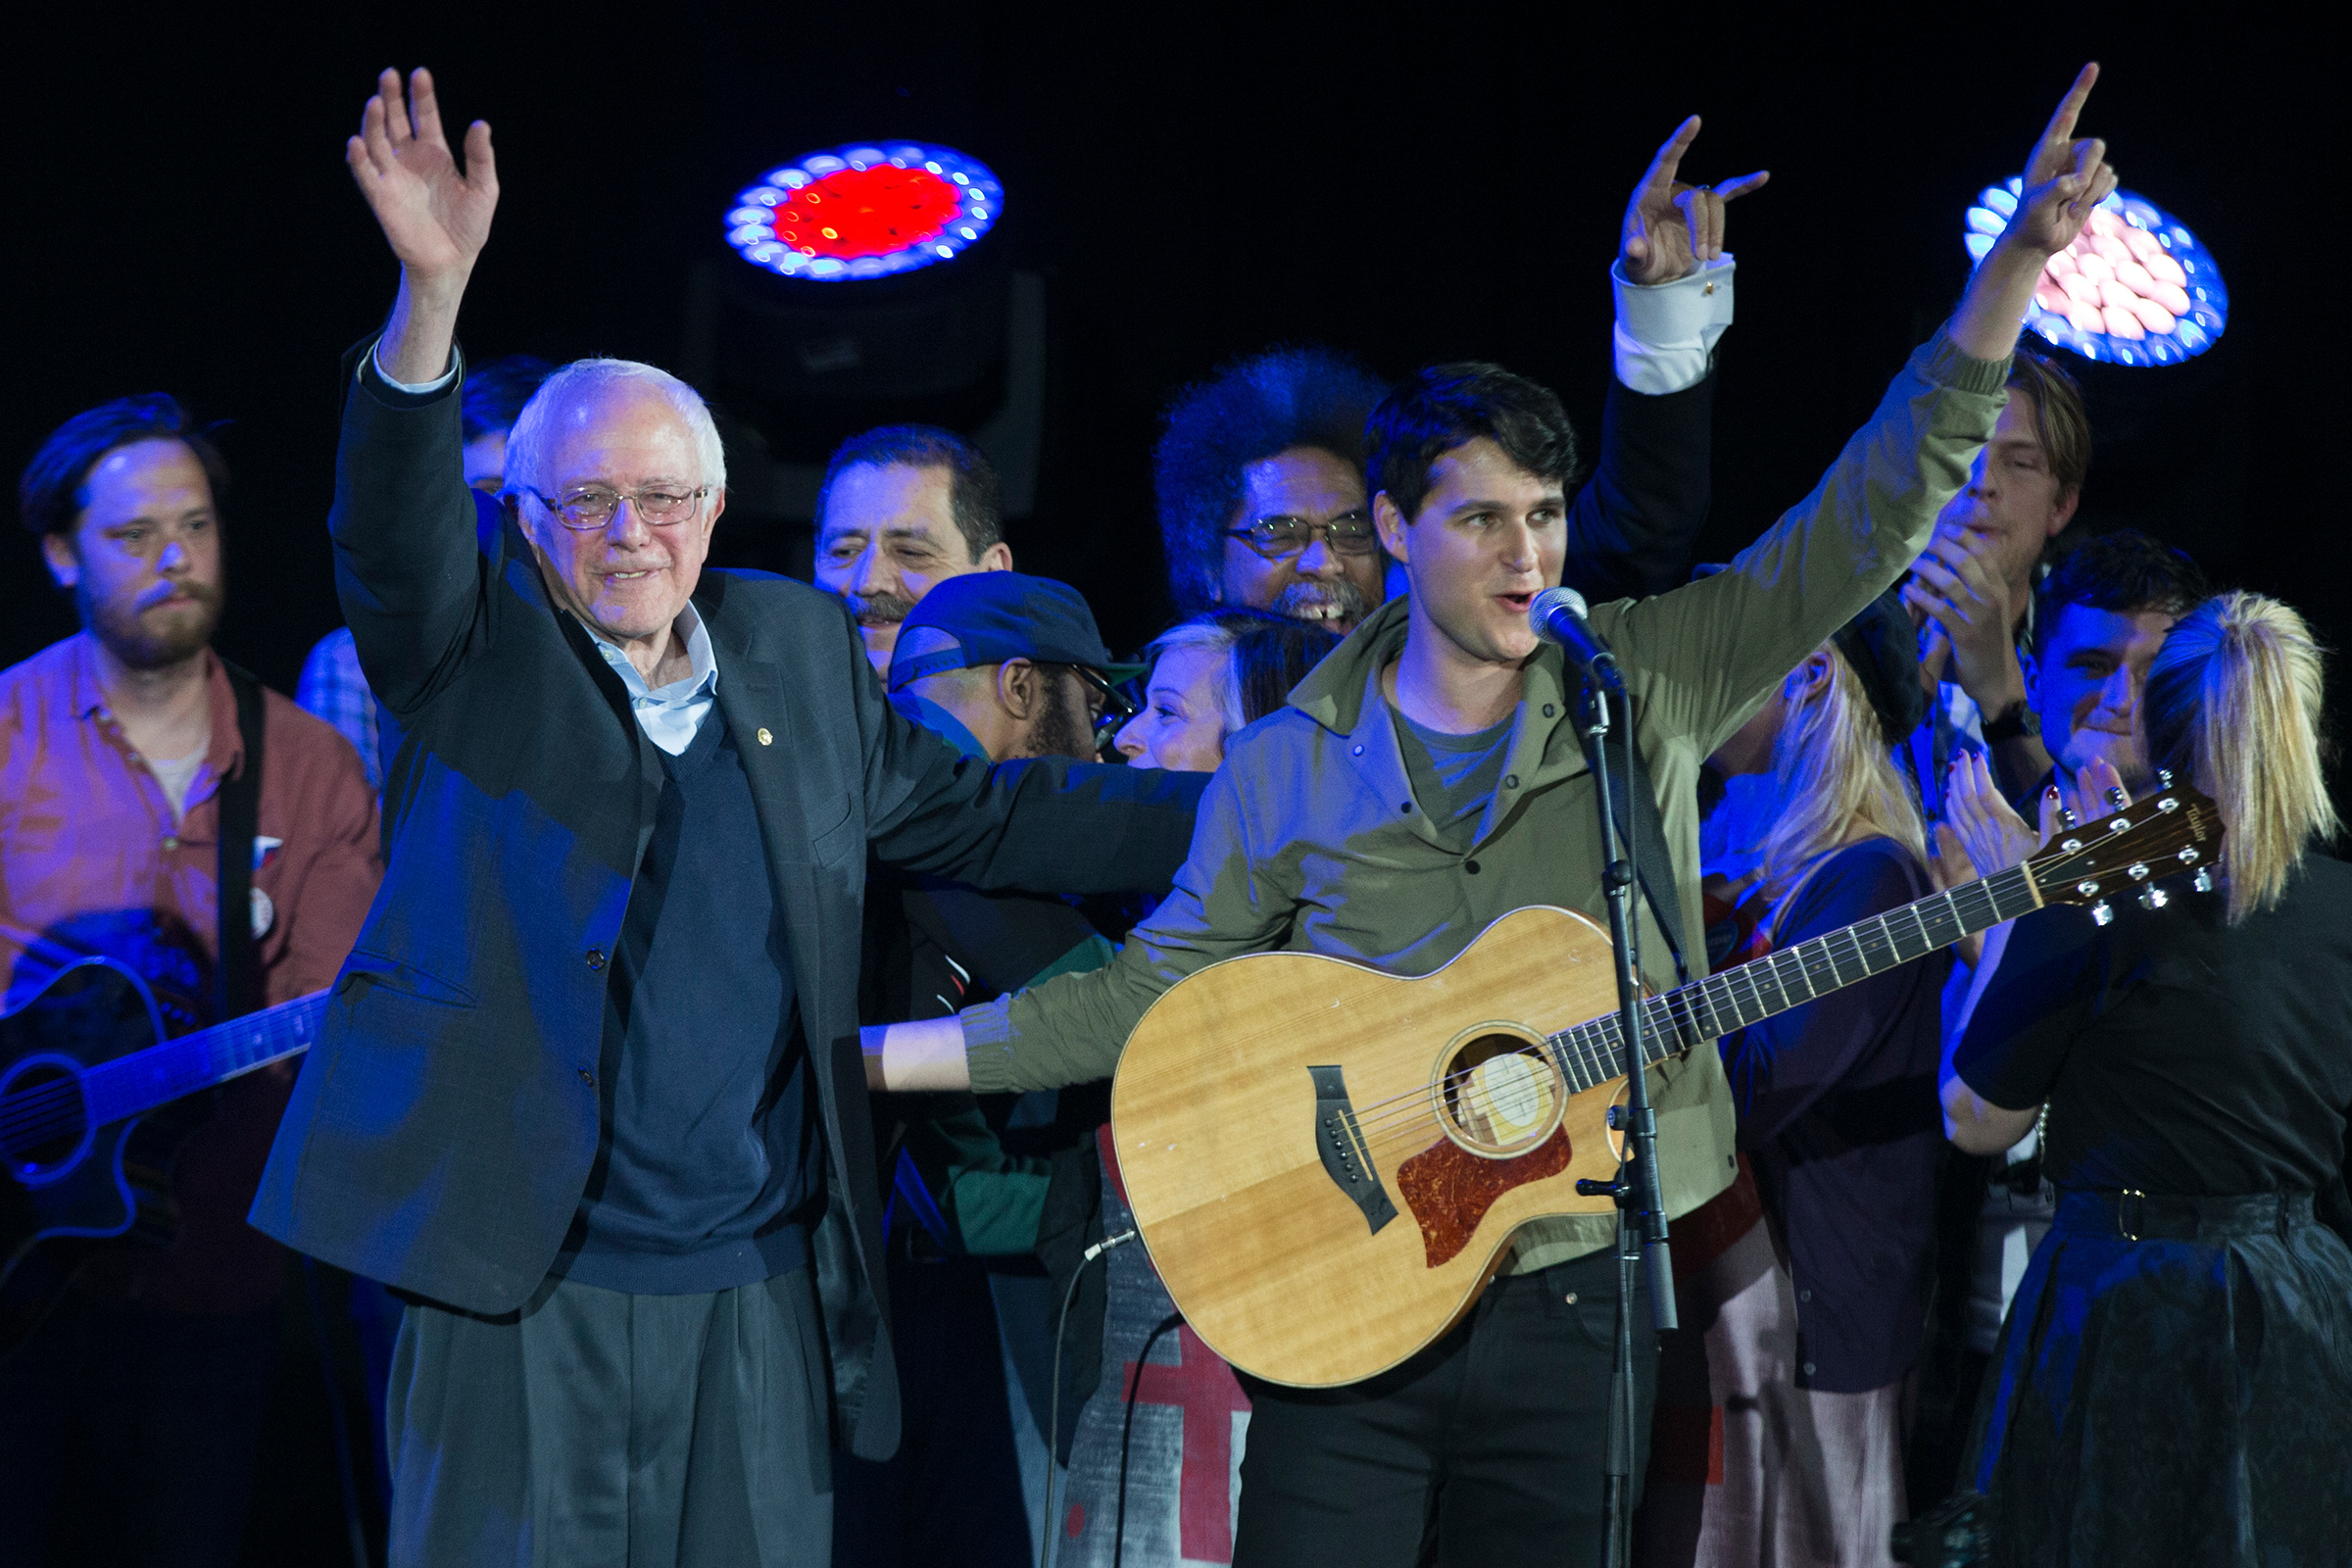 Democratic presidential candidate Sen. Bernie Sanders, and Vampire Weekend lead singer Ezra Koenig wave during a campaign rally at the University of Iowa on Jan. 30, 2016